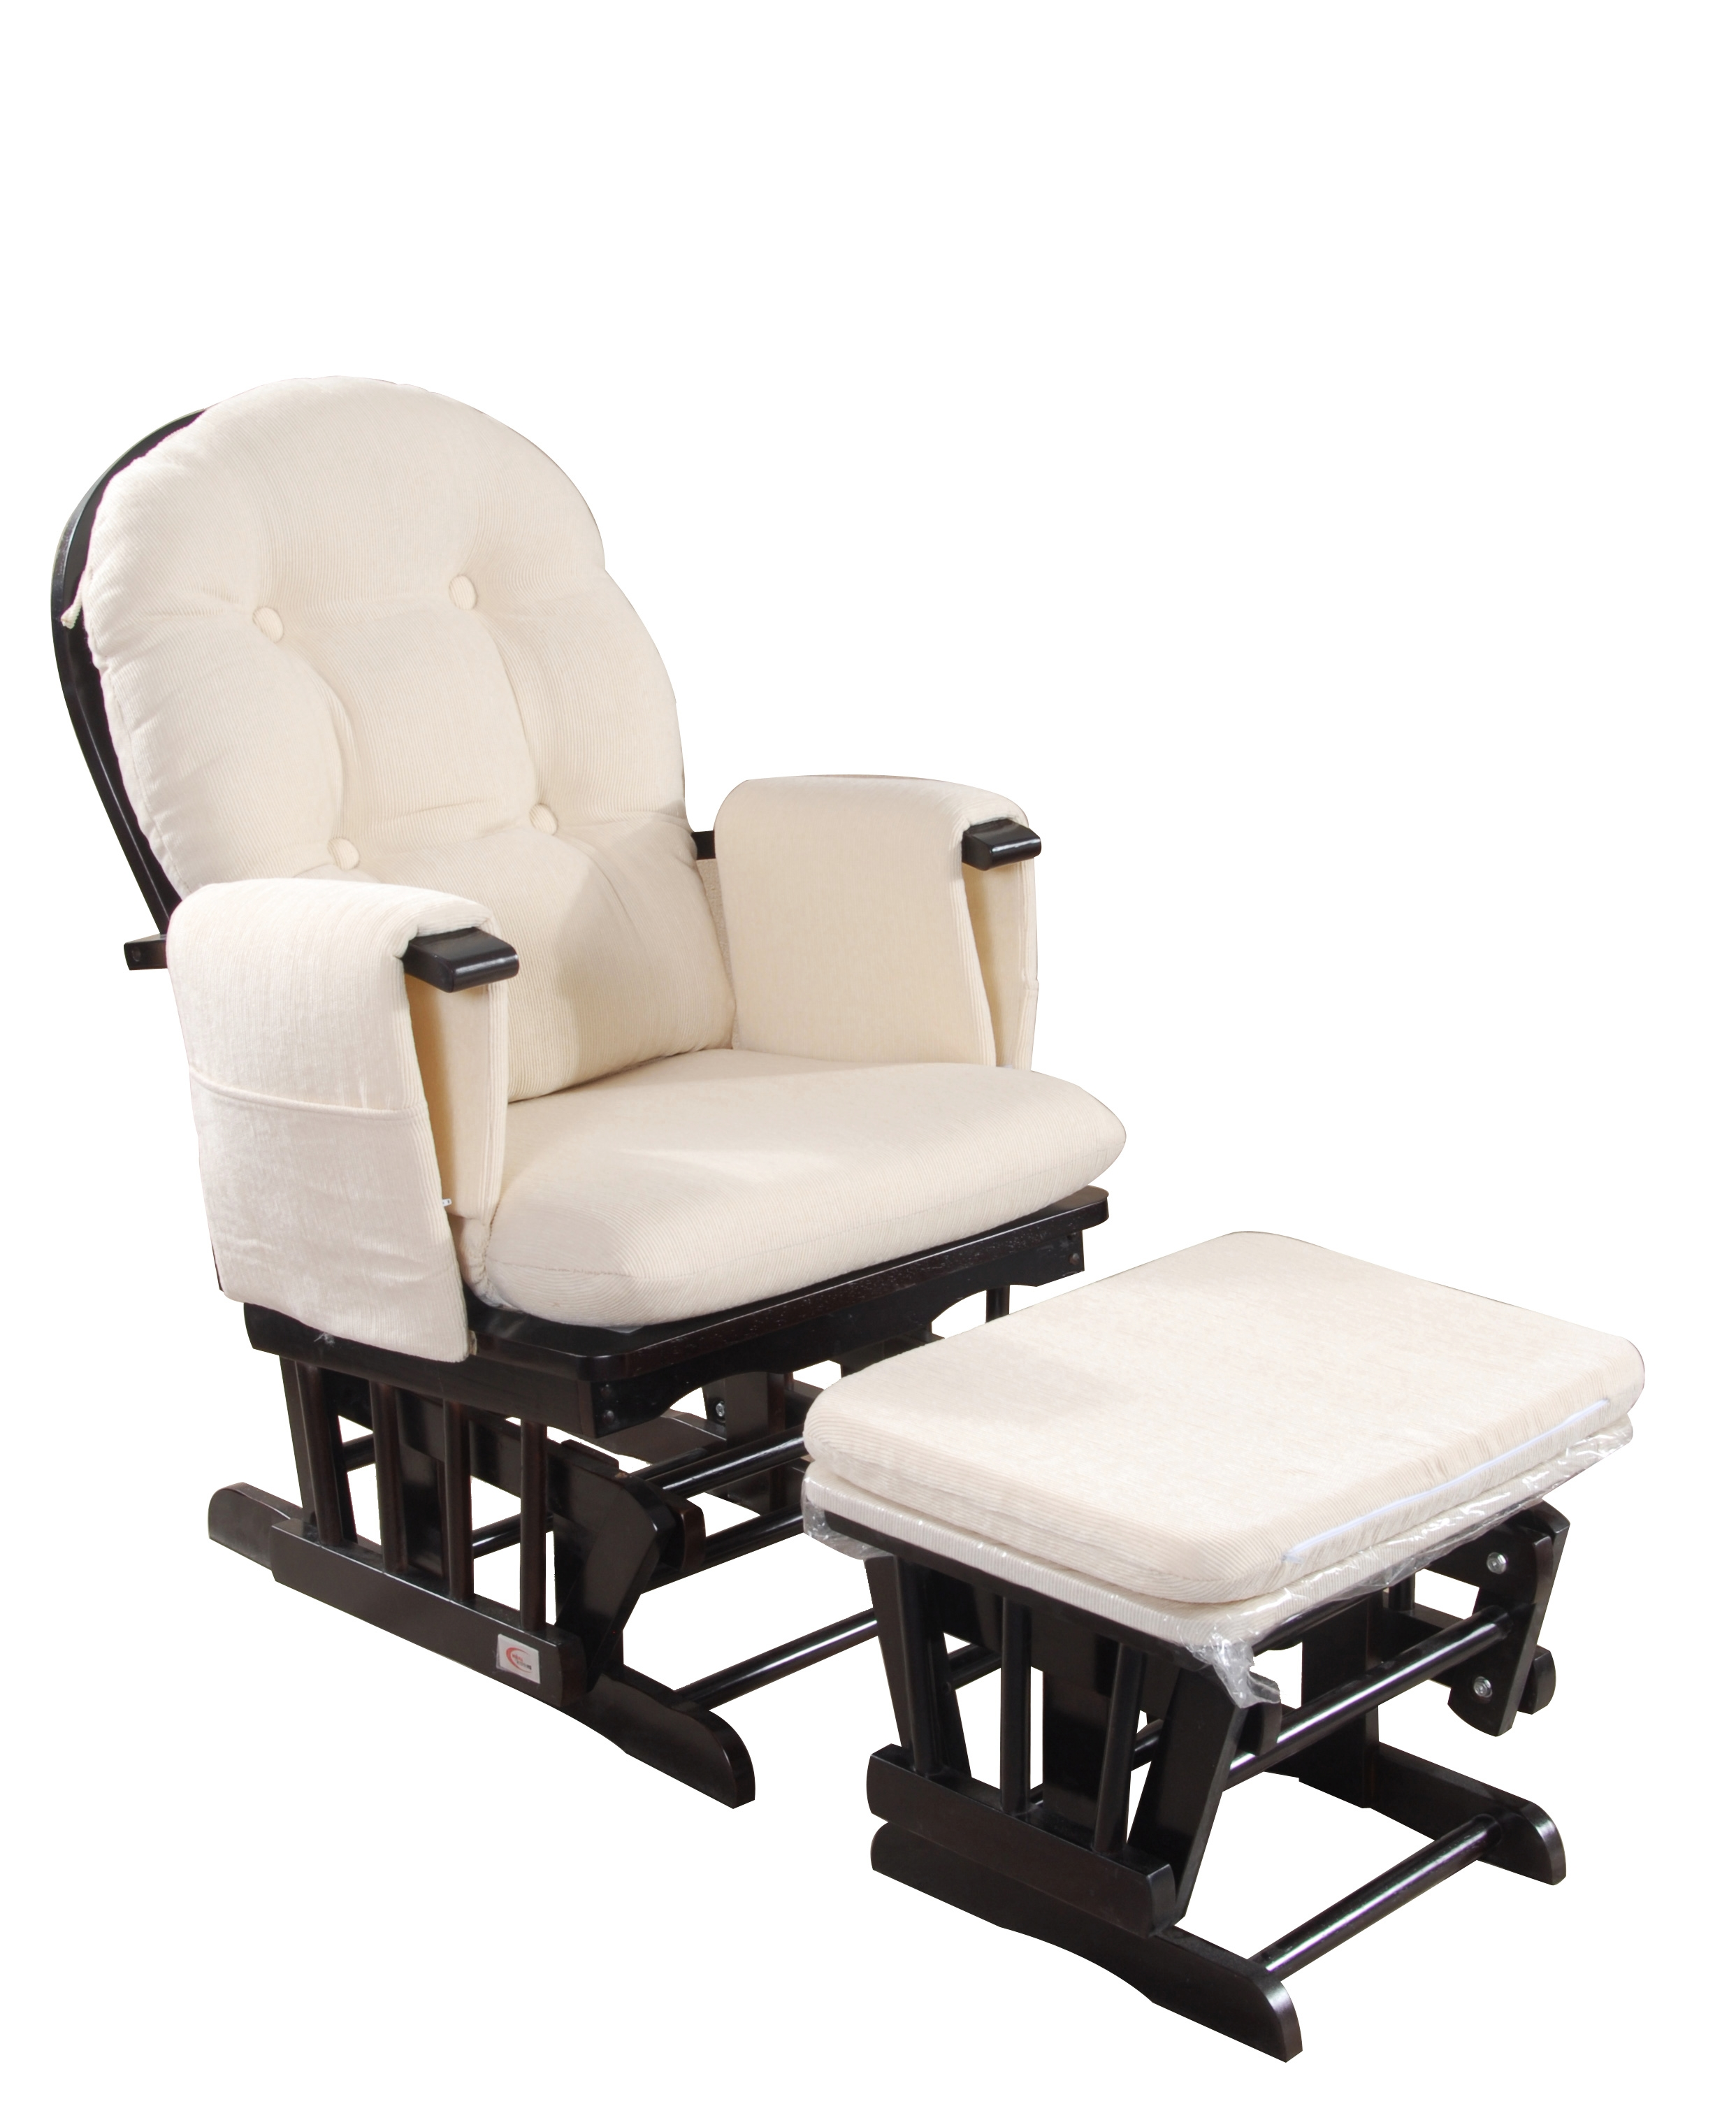 canada chair with gliders and cushions info reclining rocking bongobongo ottoman rocker nursing chairs replacement glider